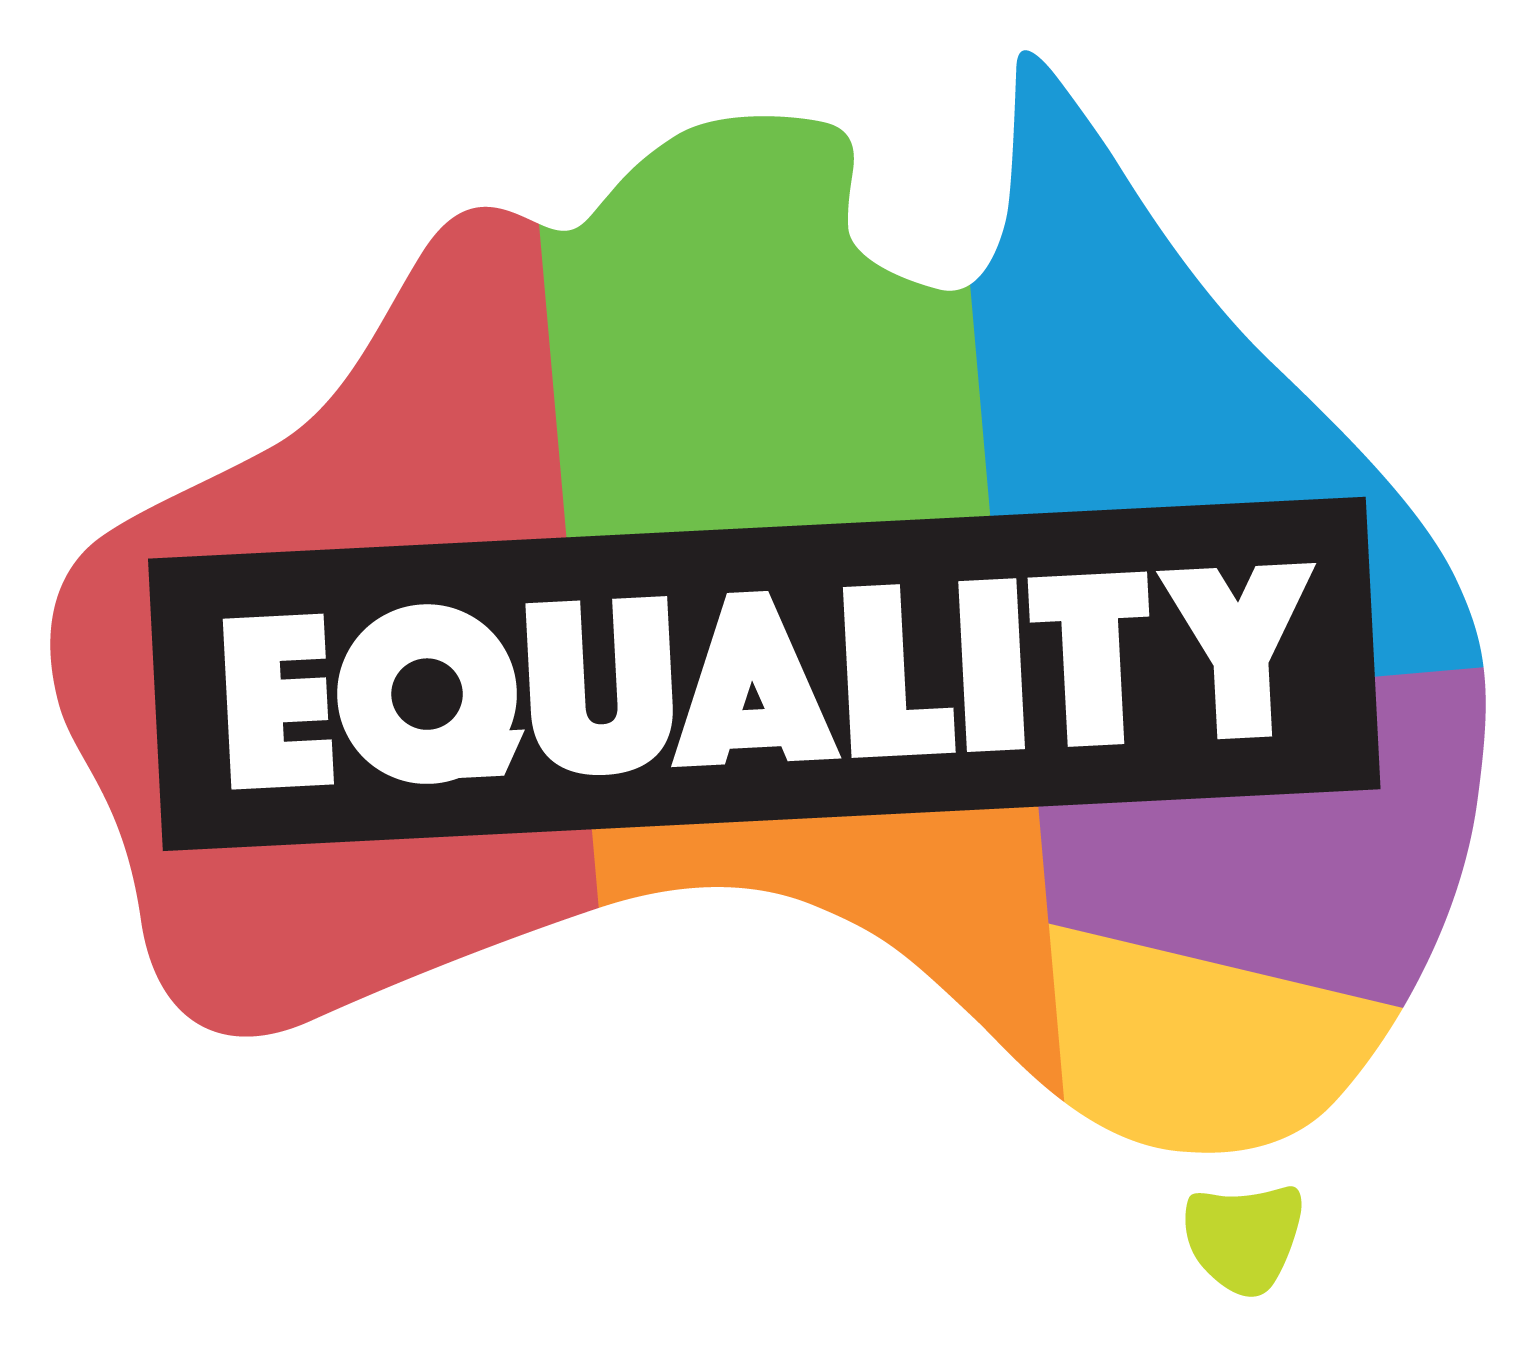 The Equality Campaign